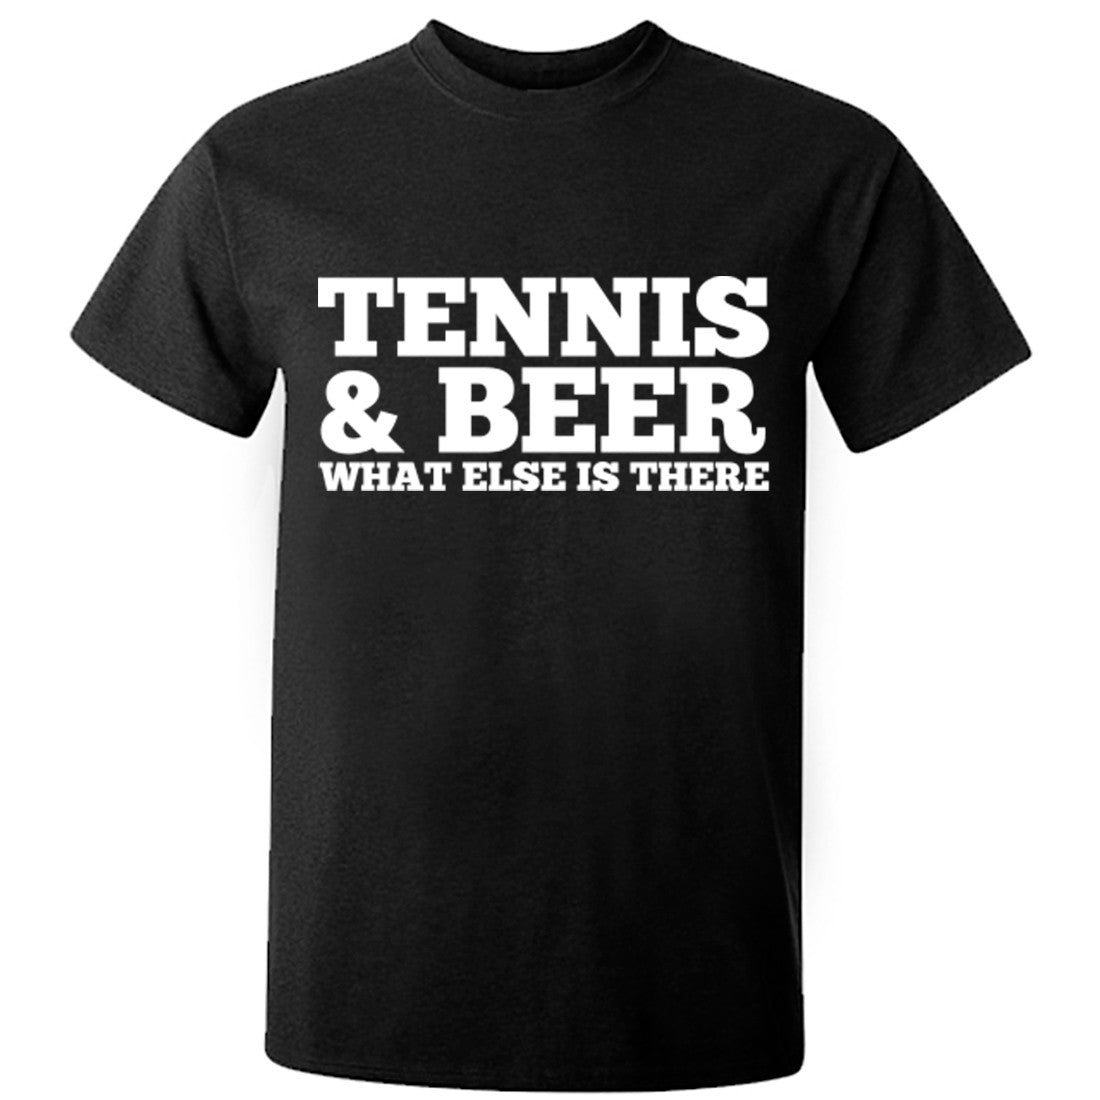 Tennis And Beer What Else Is There Unisex Fit T-Shirt K0676 - Illustrated Identity Ltd.